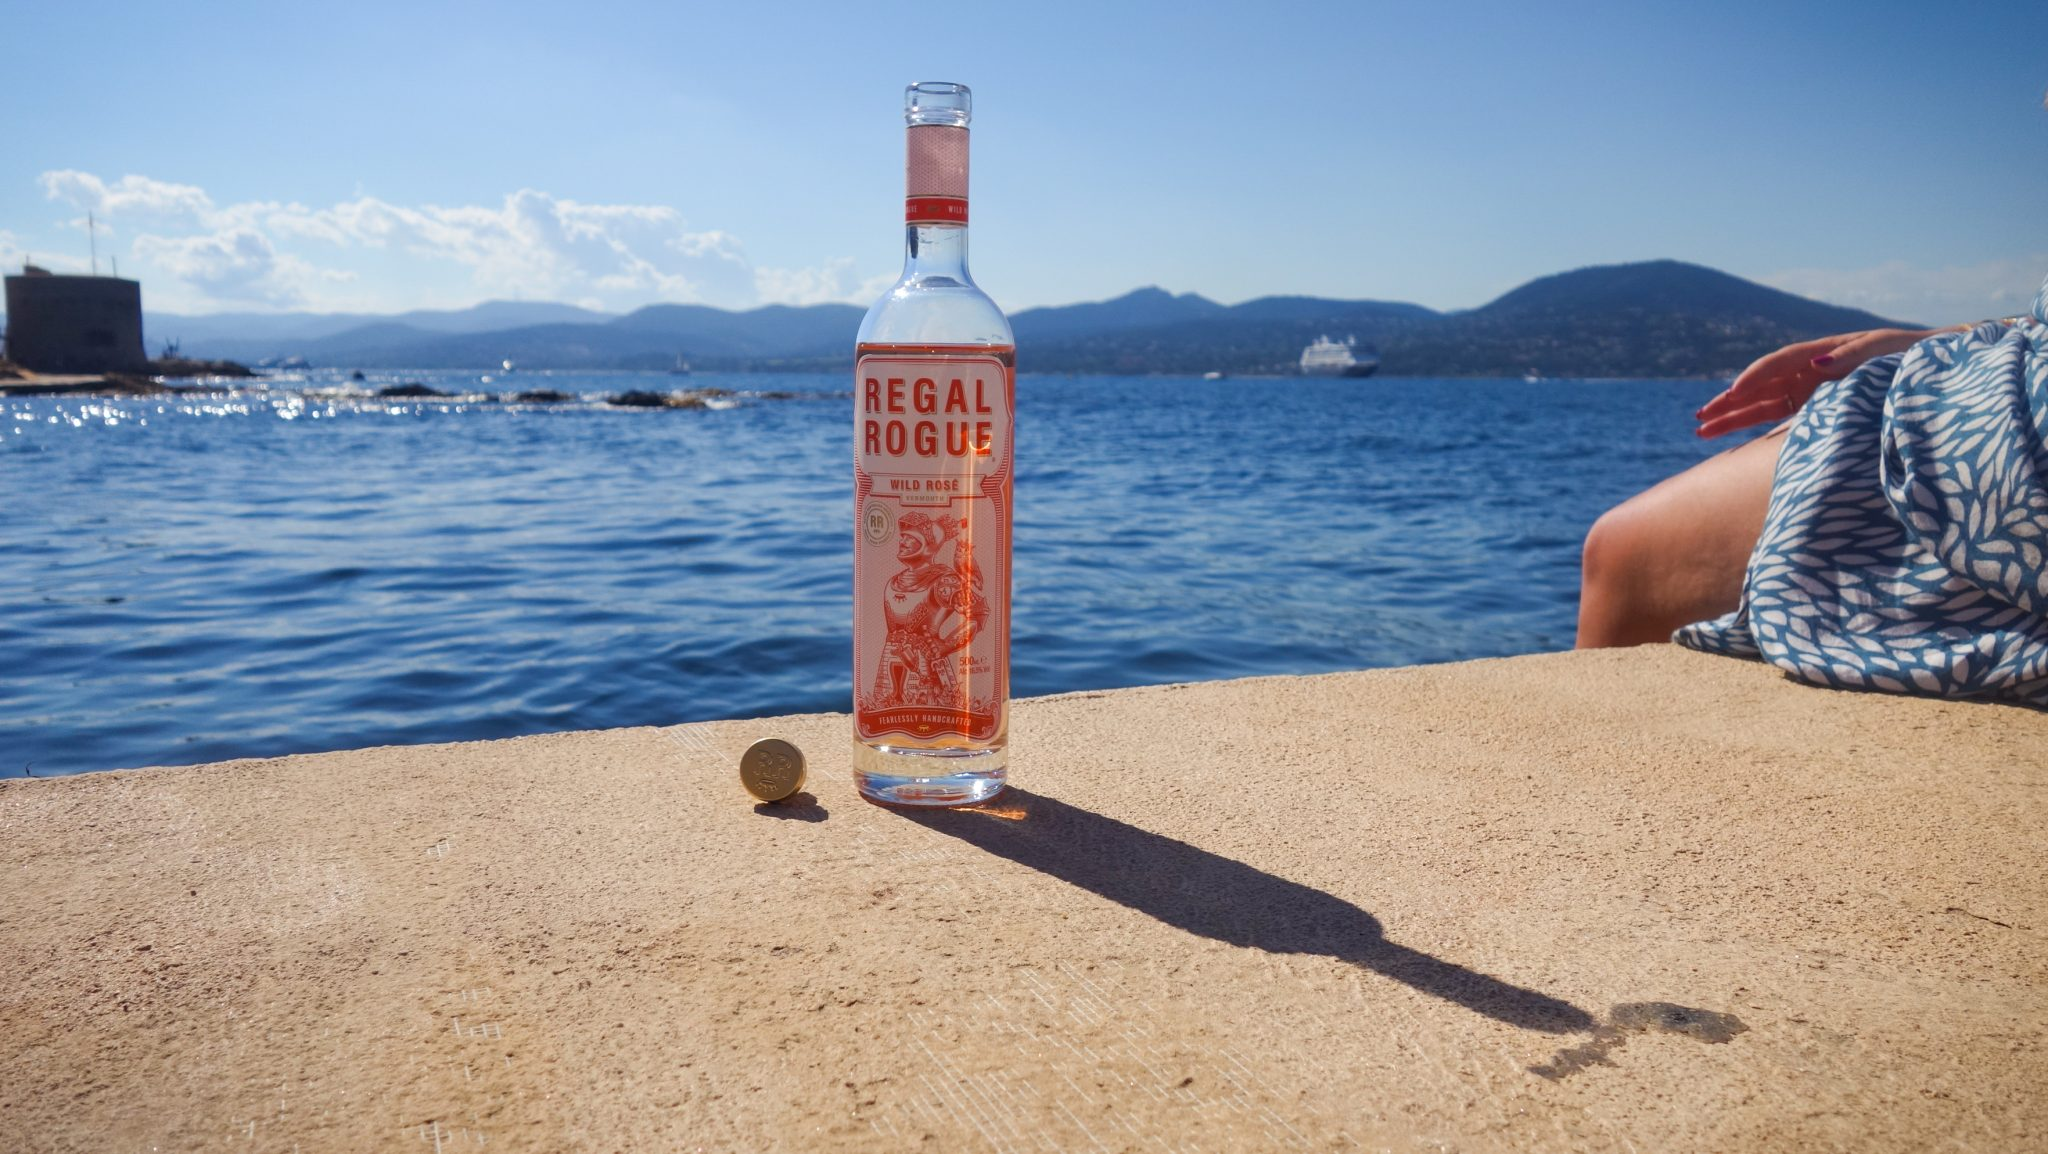 Alcohol Marketing Top 5 header image of Regal Rogue bottle in sunshine in Saint Tropez in France